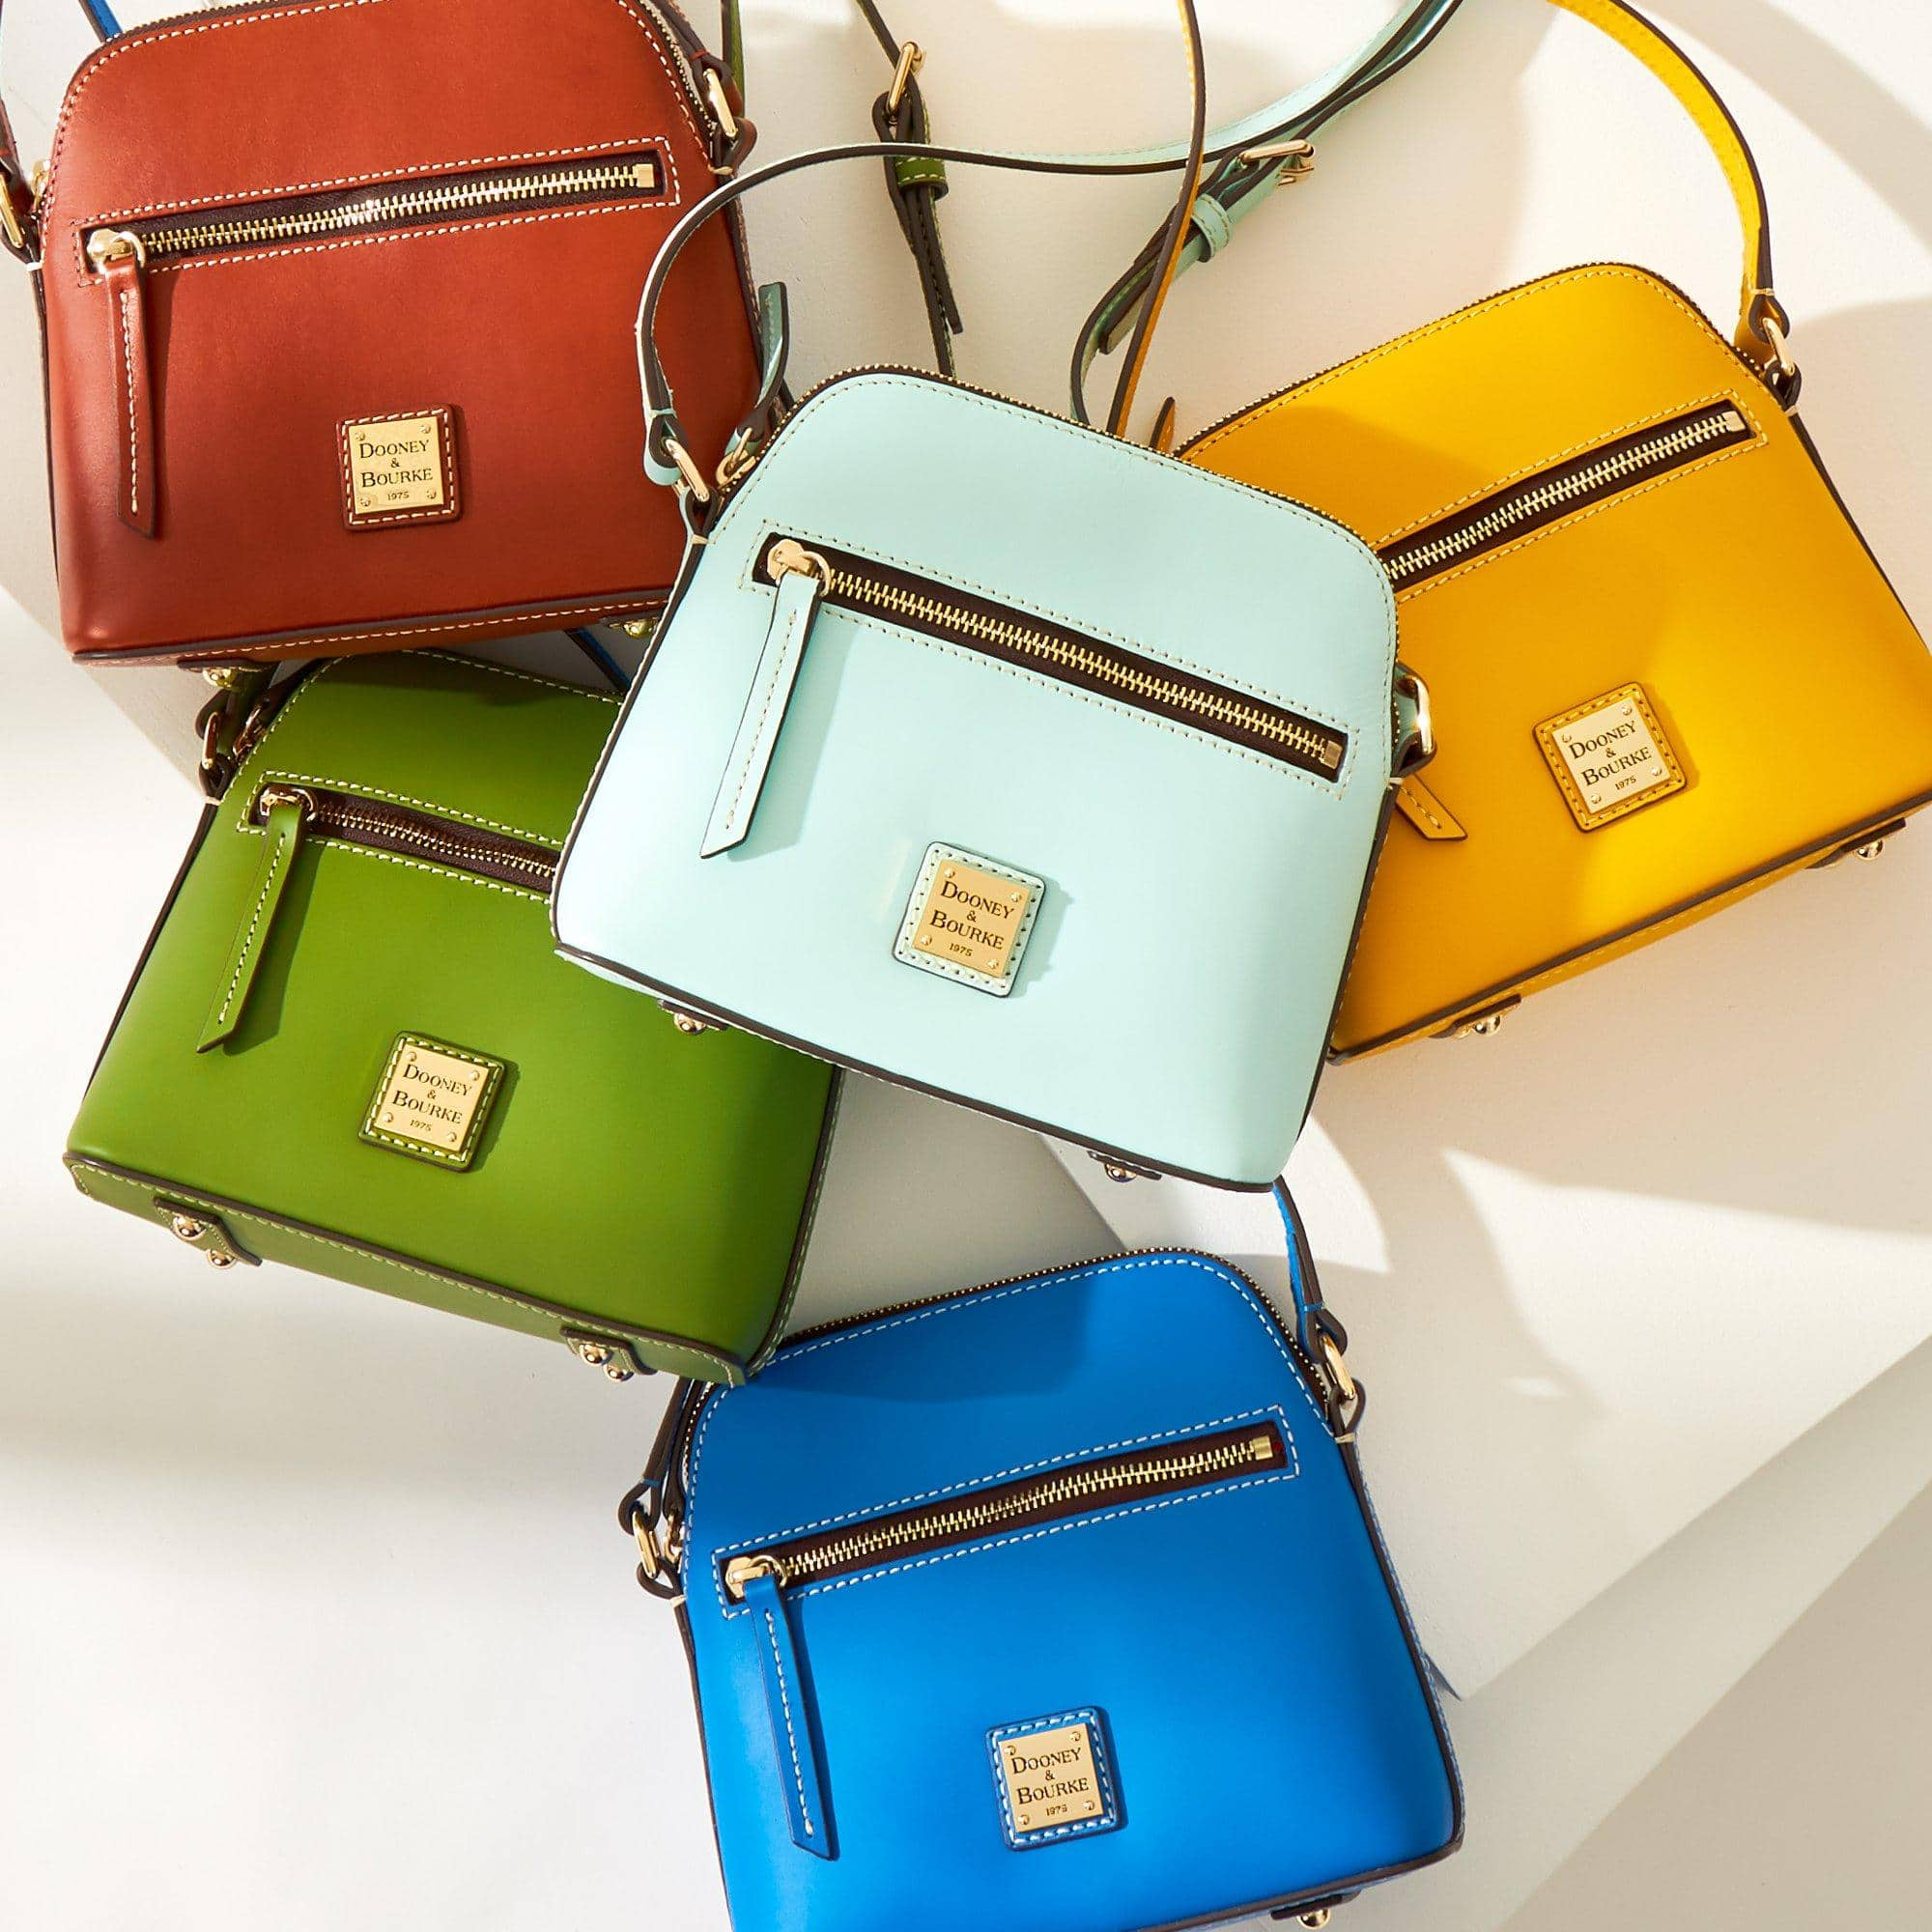 A compact crossbody bag that can carry your day-t0-night essentials